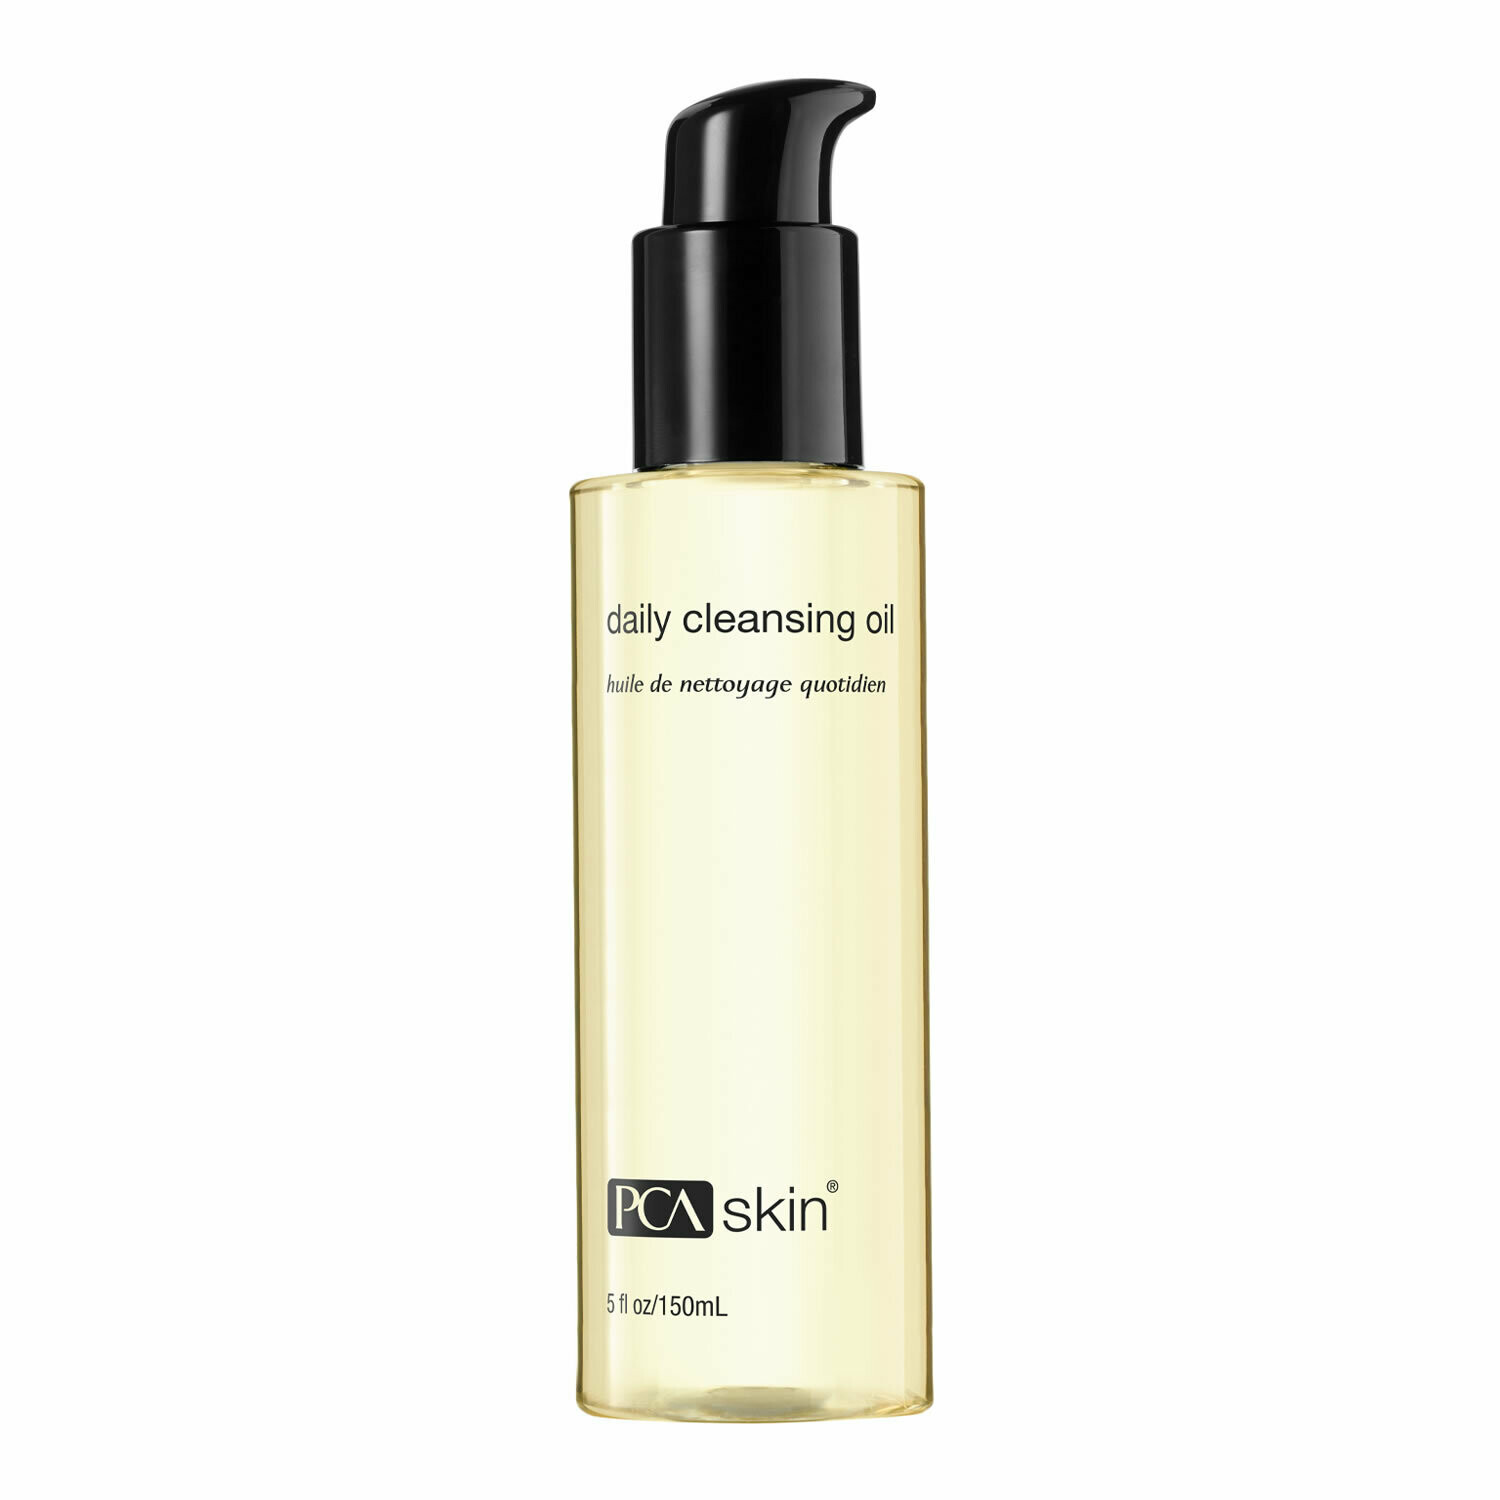 Daily cleansing oil 150 ml